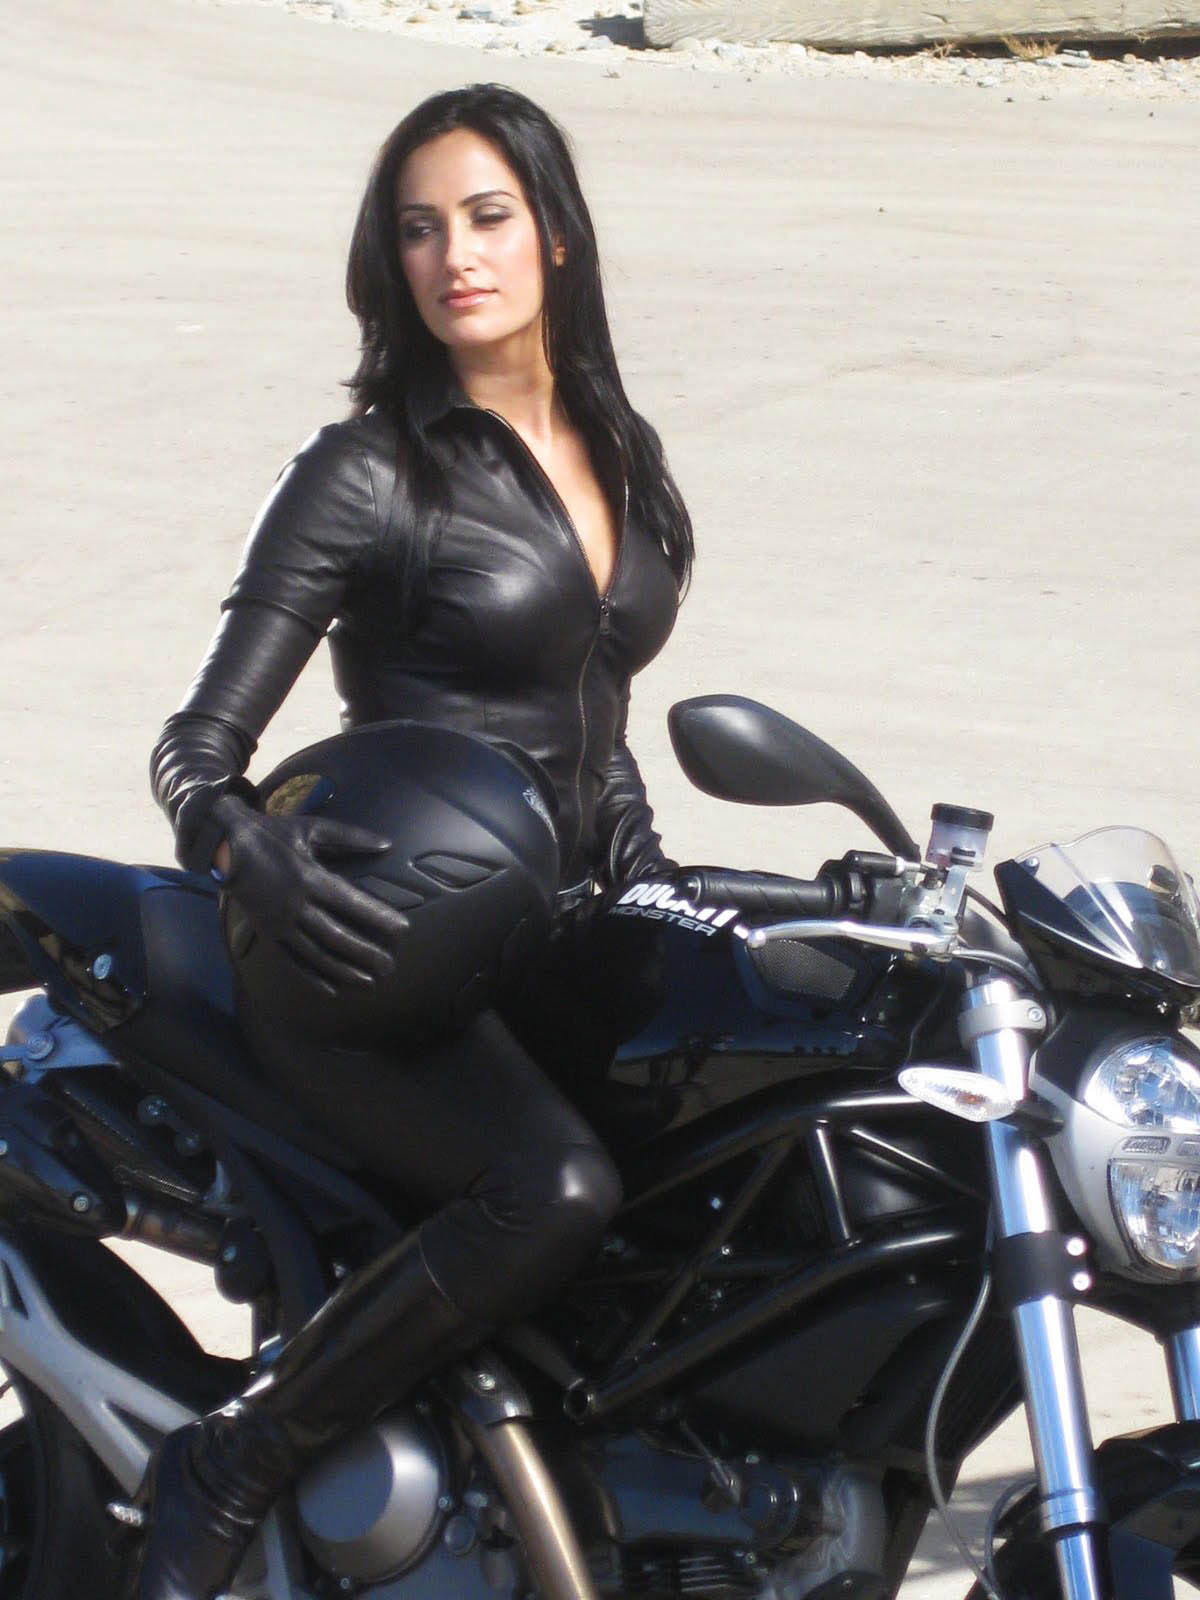 Ebony Female Models On Motorcycles http://www.returnofthecaferacers.com/2012_09_01_archive.html